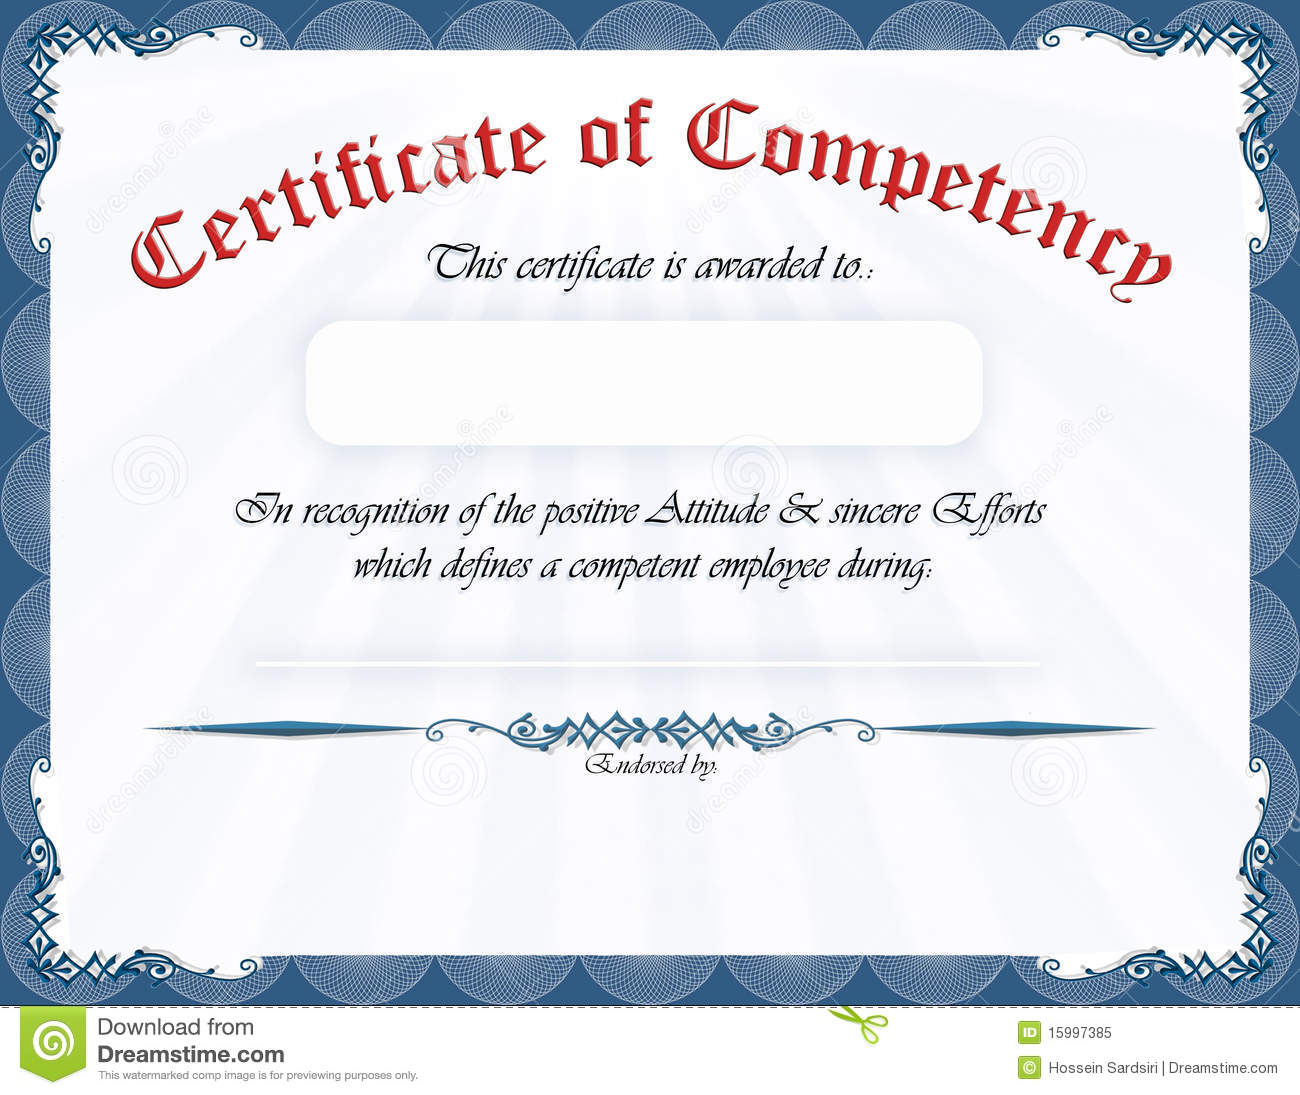 Certificate Of Competency Stock Illustration Illustration Of Award